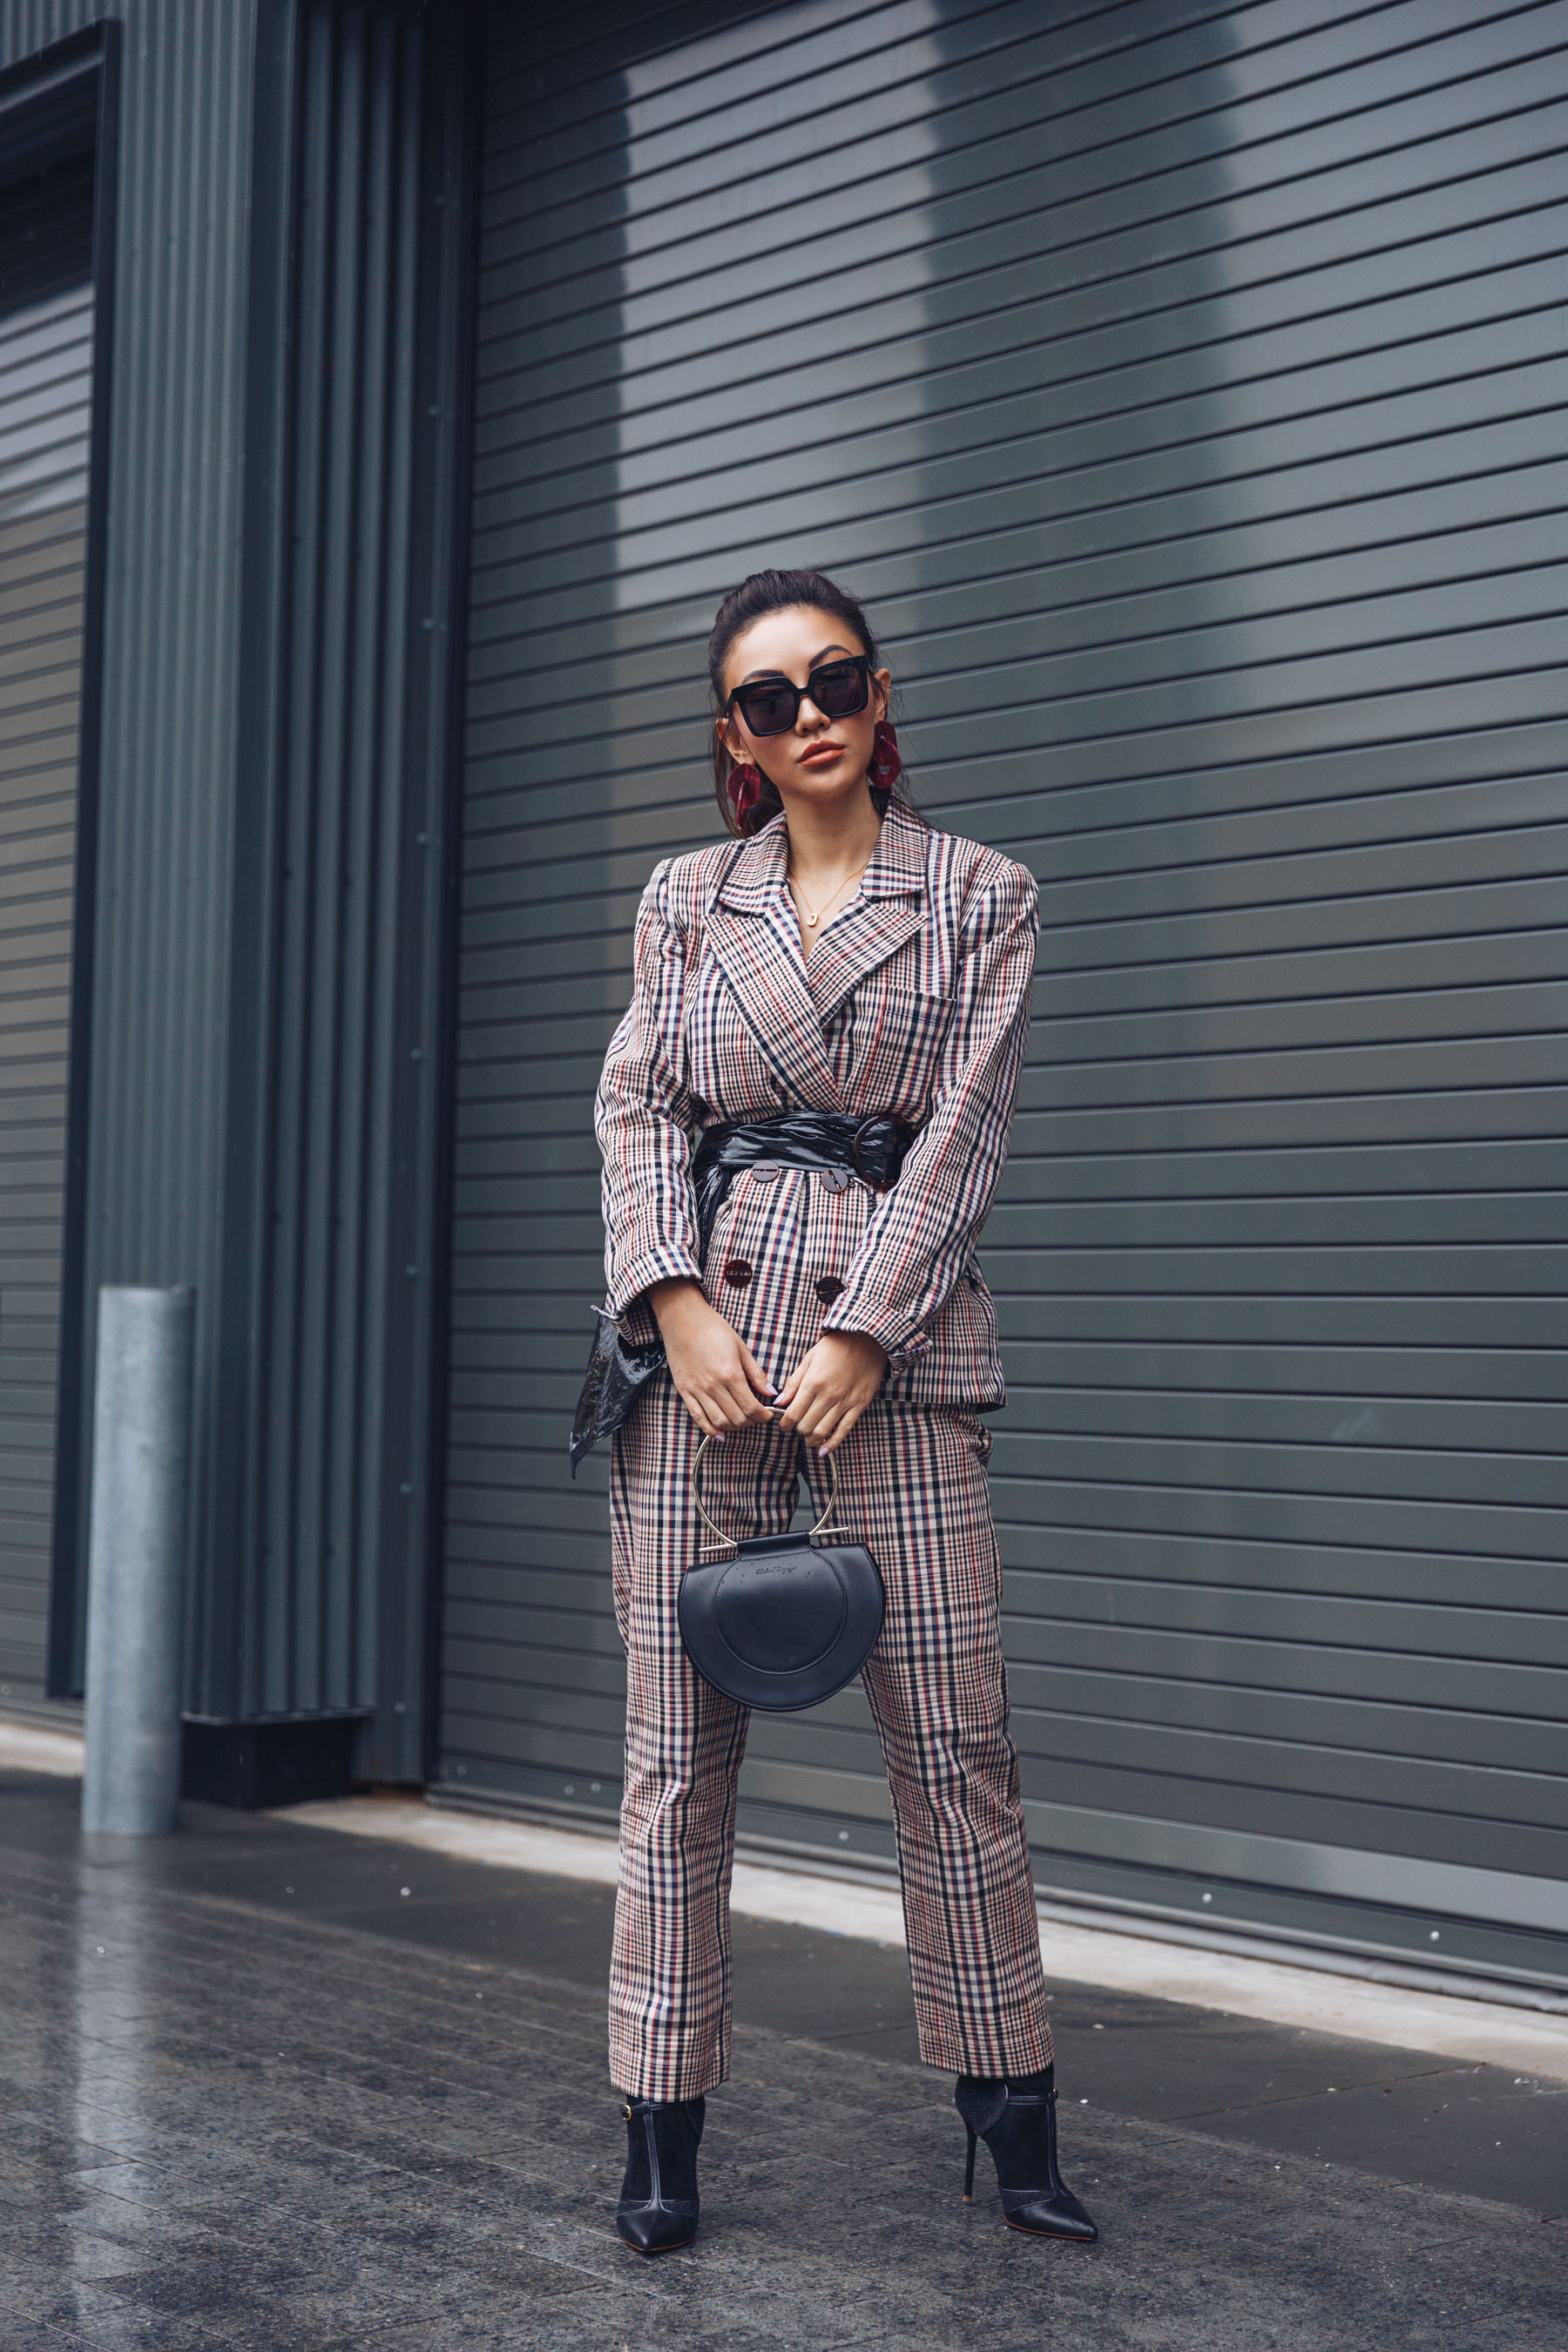 NYFW Day 4 - NotJessFashion going to Tibi Show // Notjessfashion.com // Plaid Suit with Leather Belt